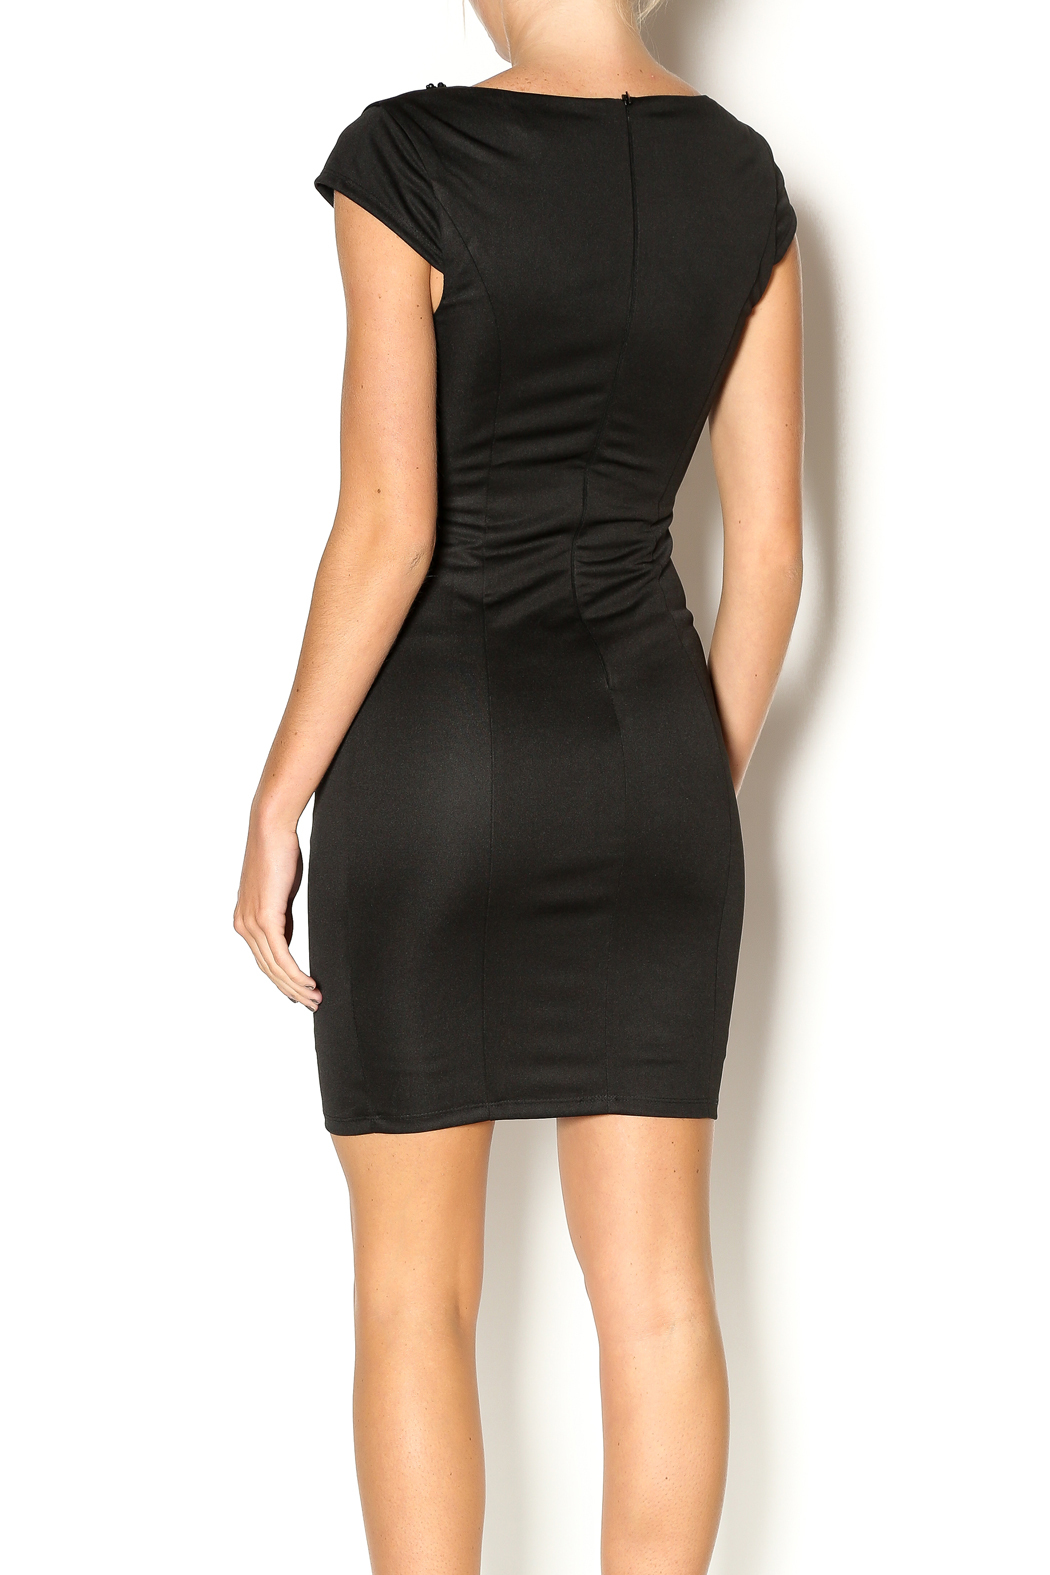 Abby & Taylor Sweetheart Neckline Dress - Back Cropped Image